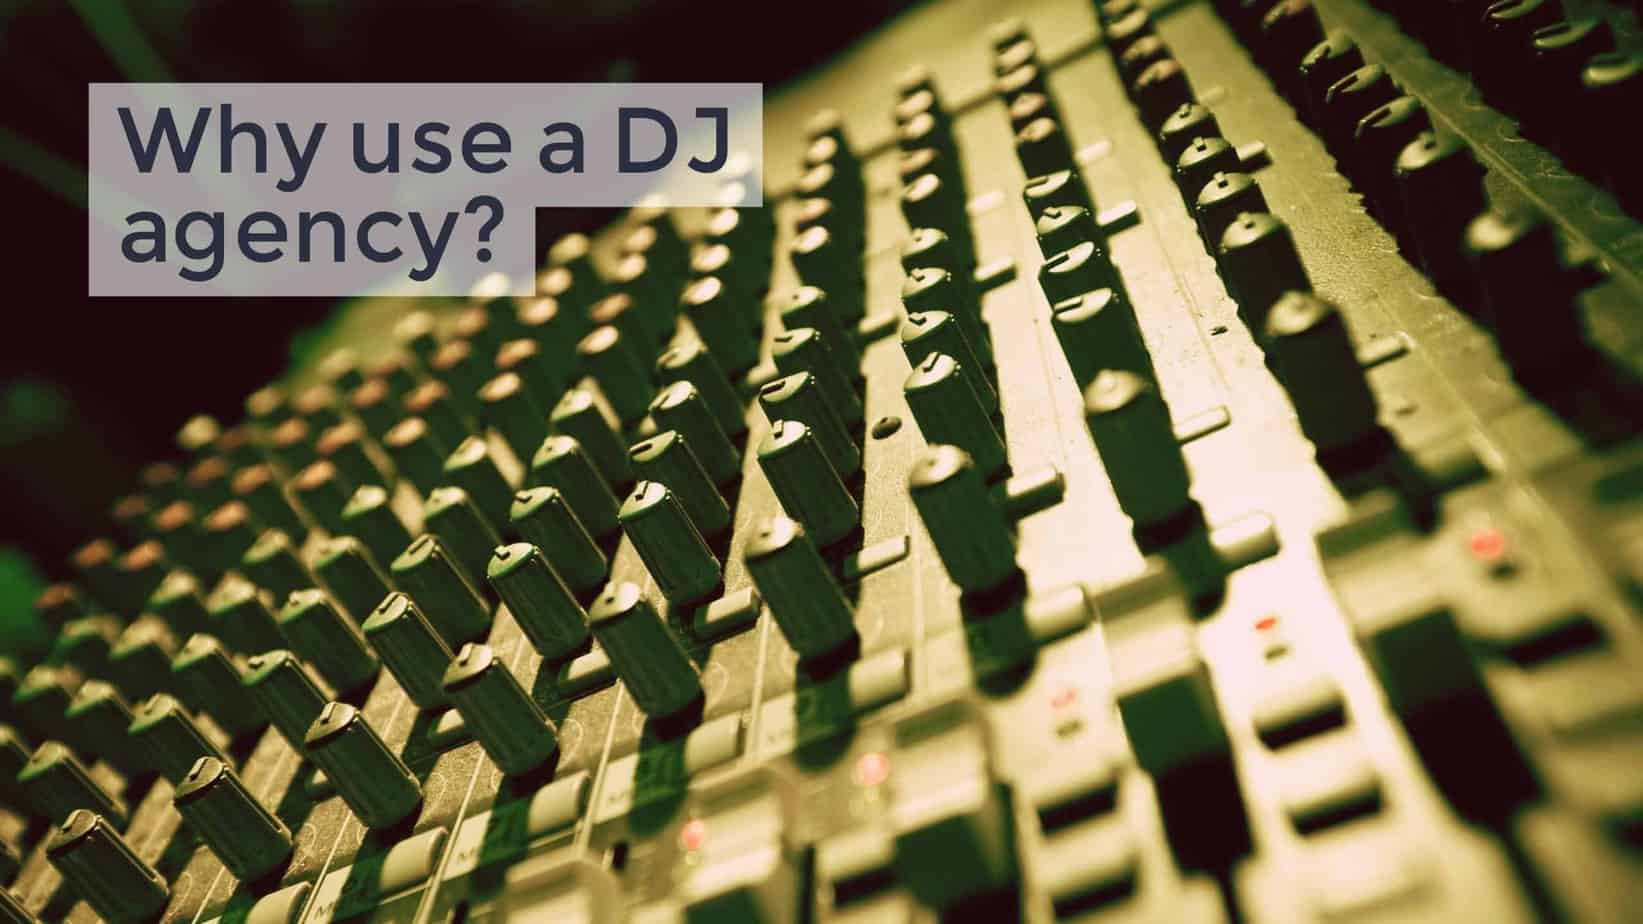 Why use a DJ agency?